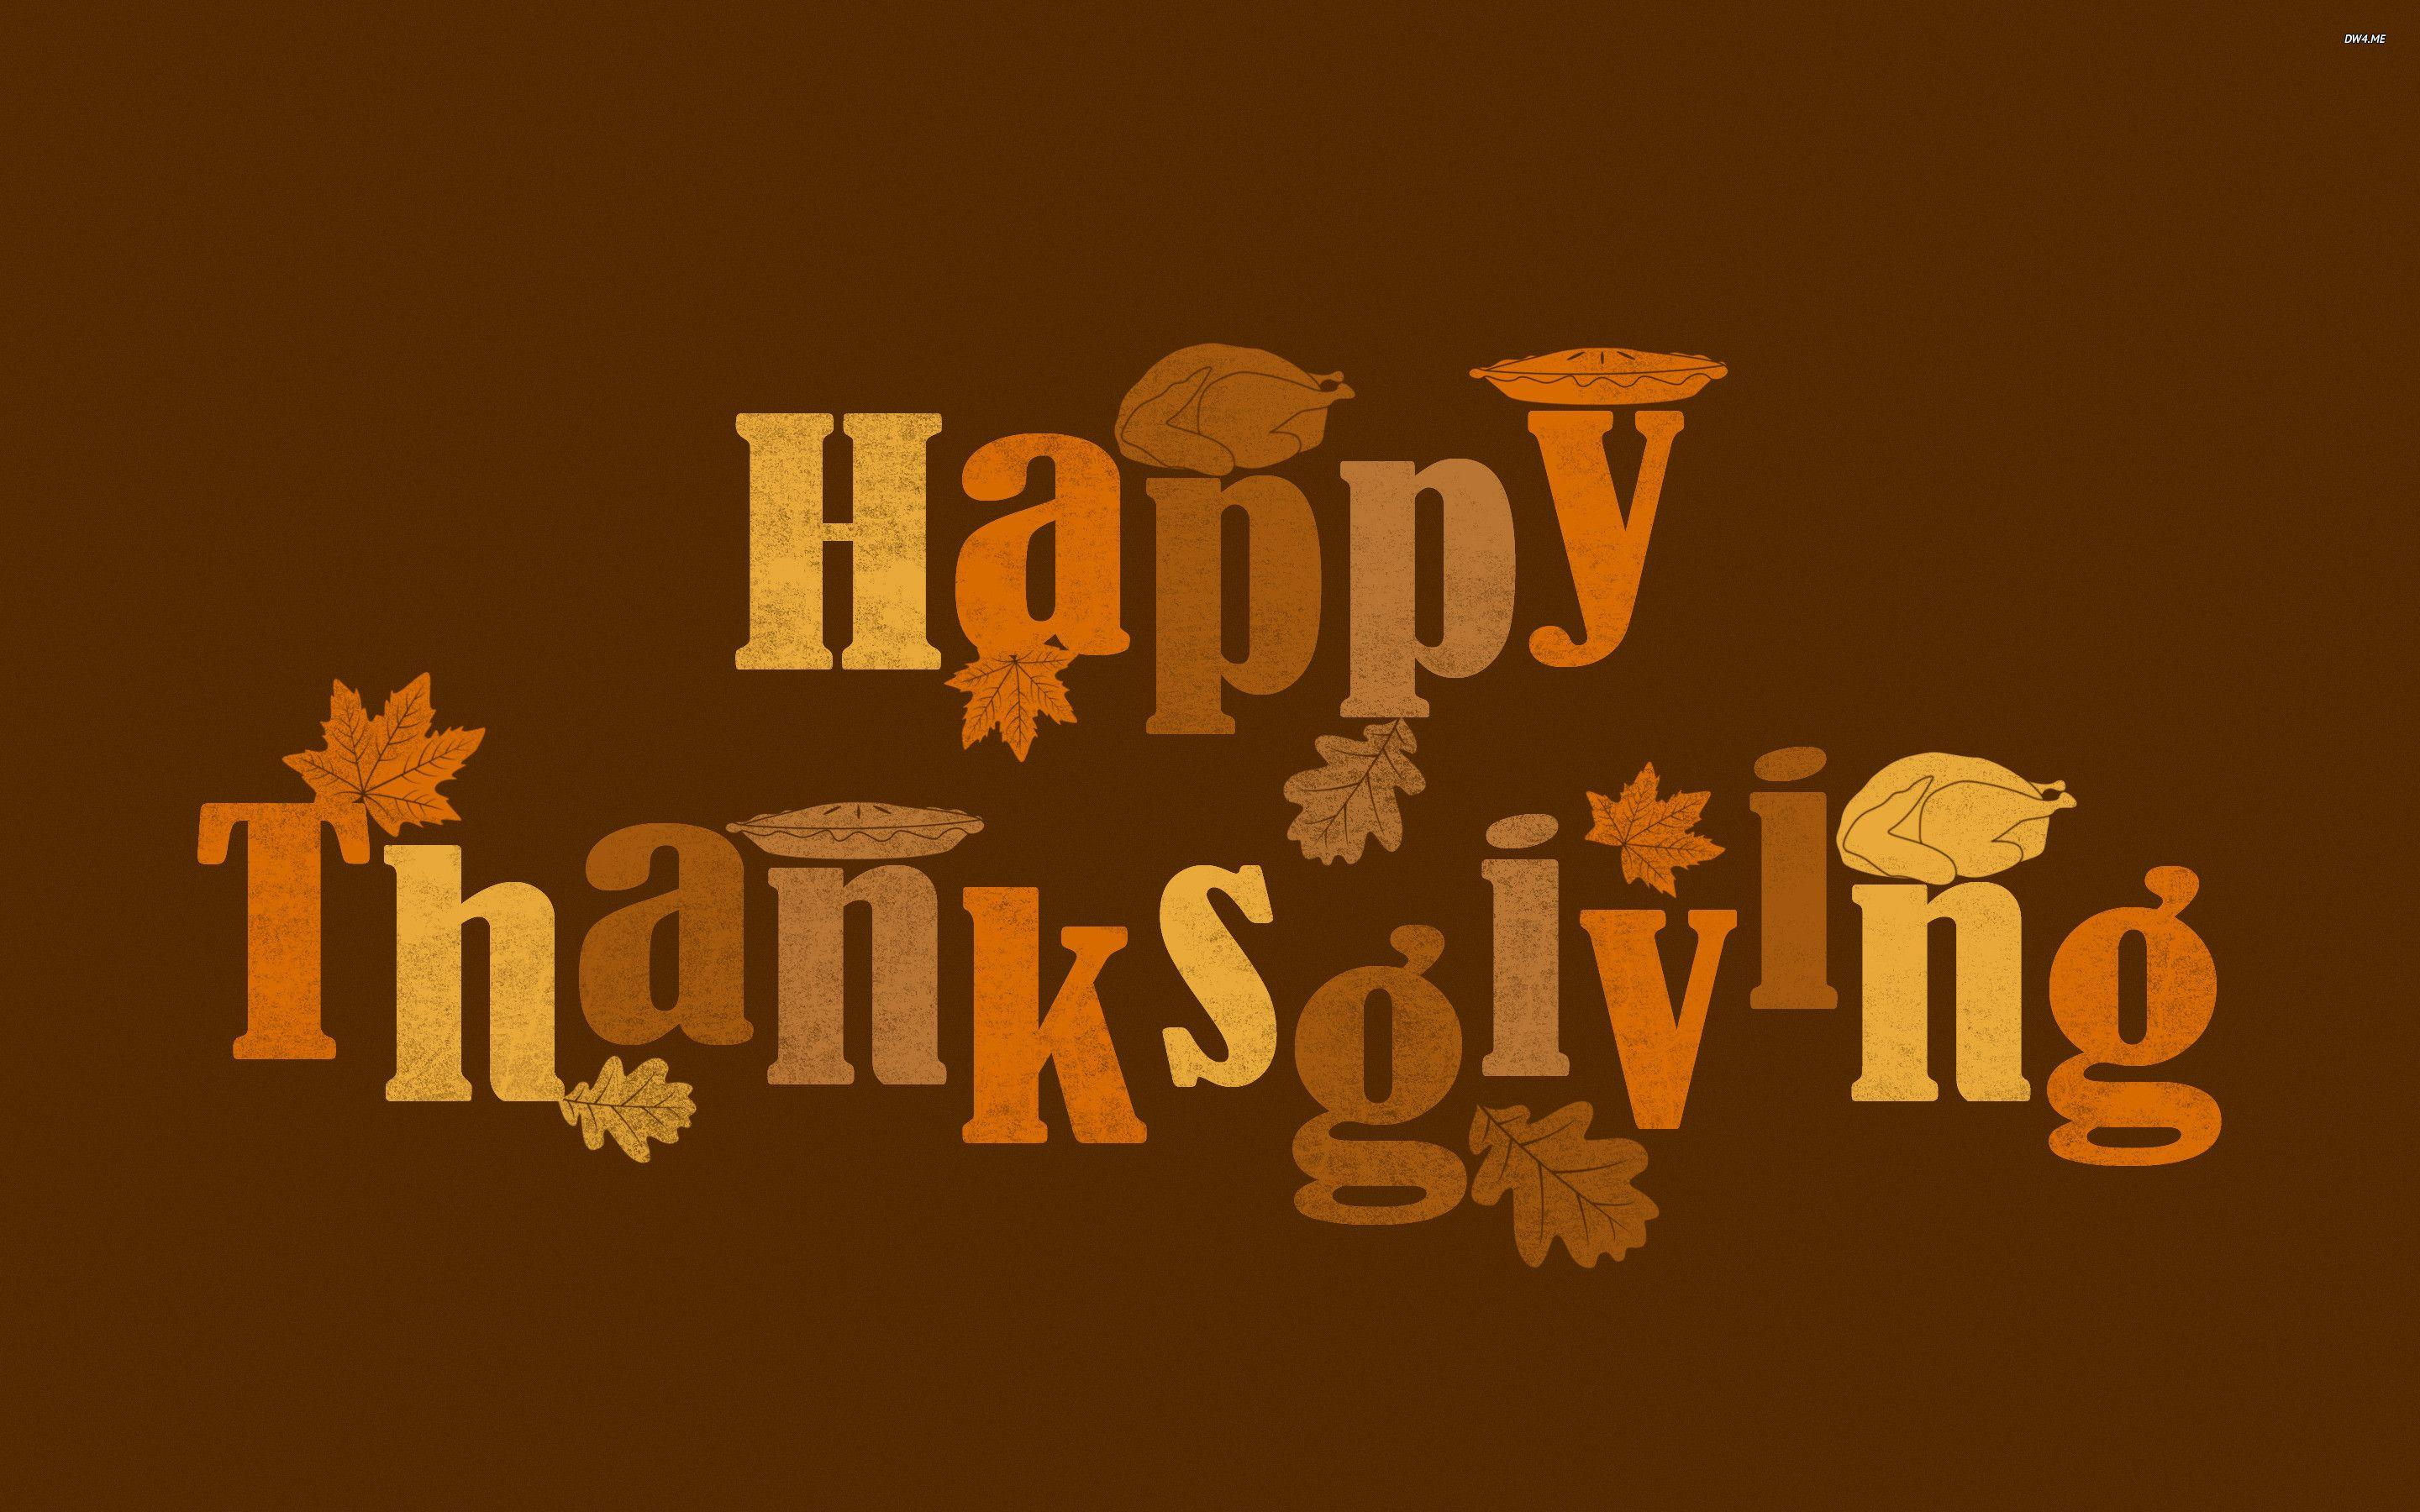 Happy Thanksgiving Wallpapers - Wallpaper Cave